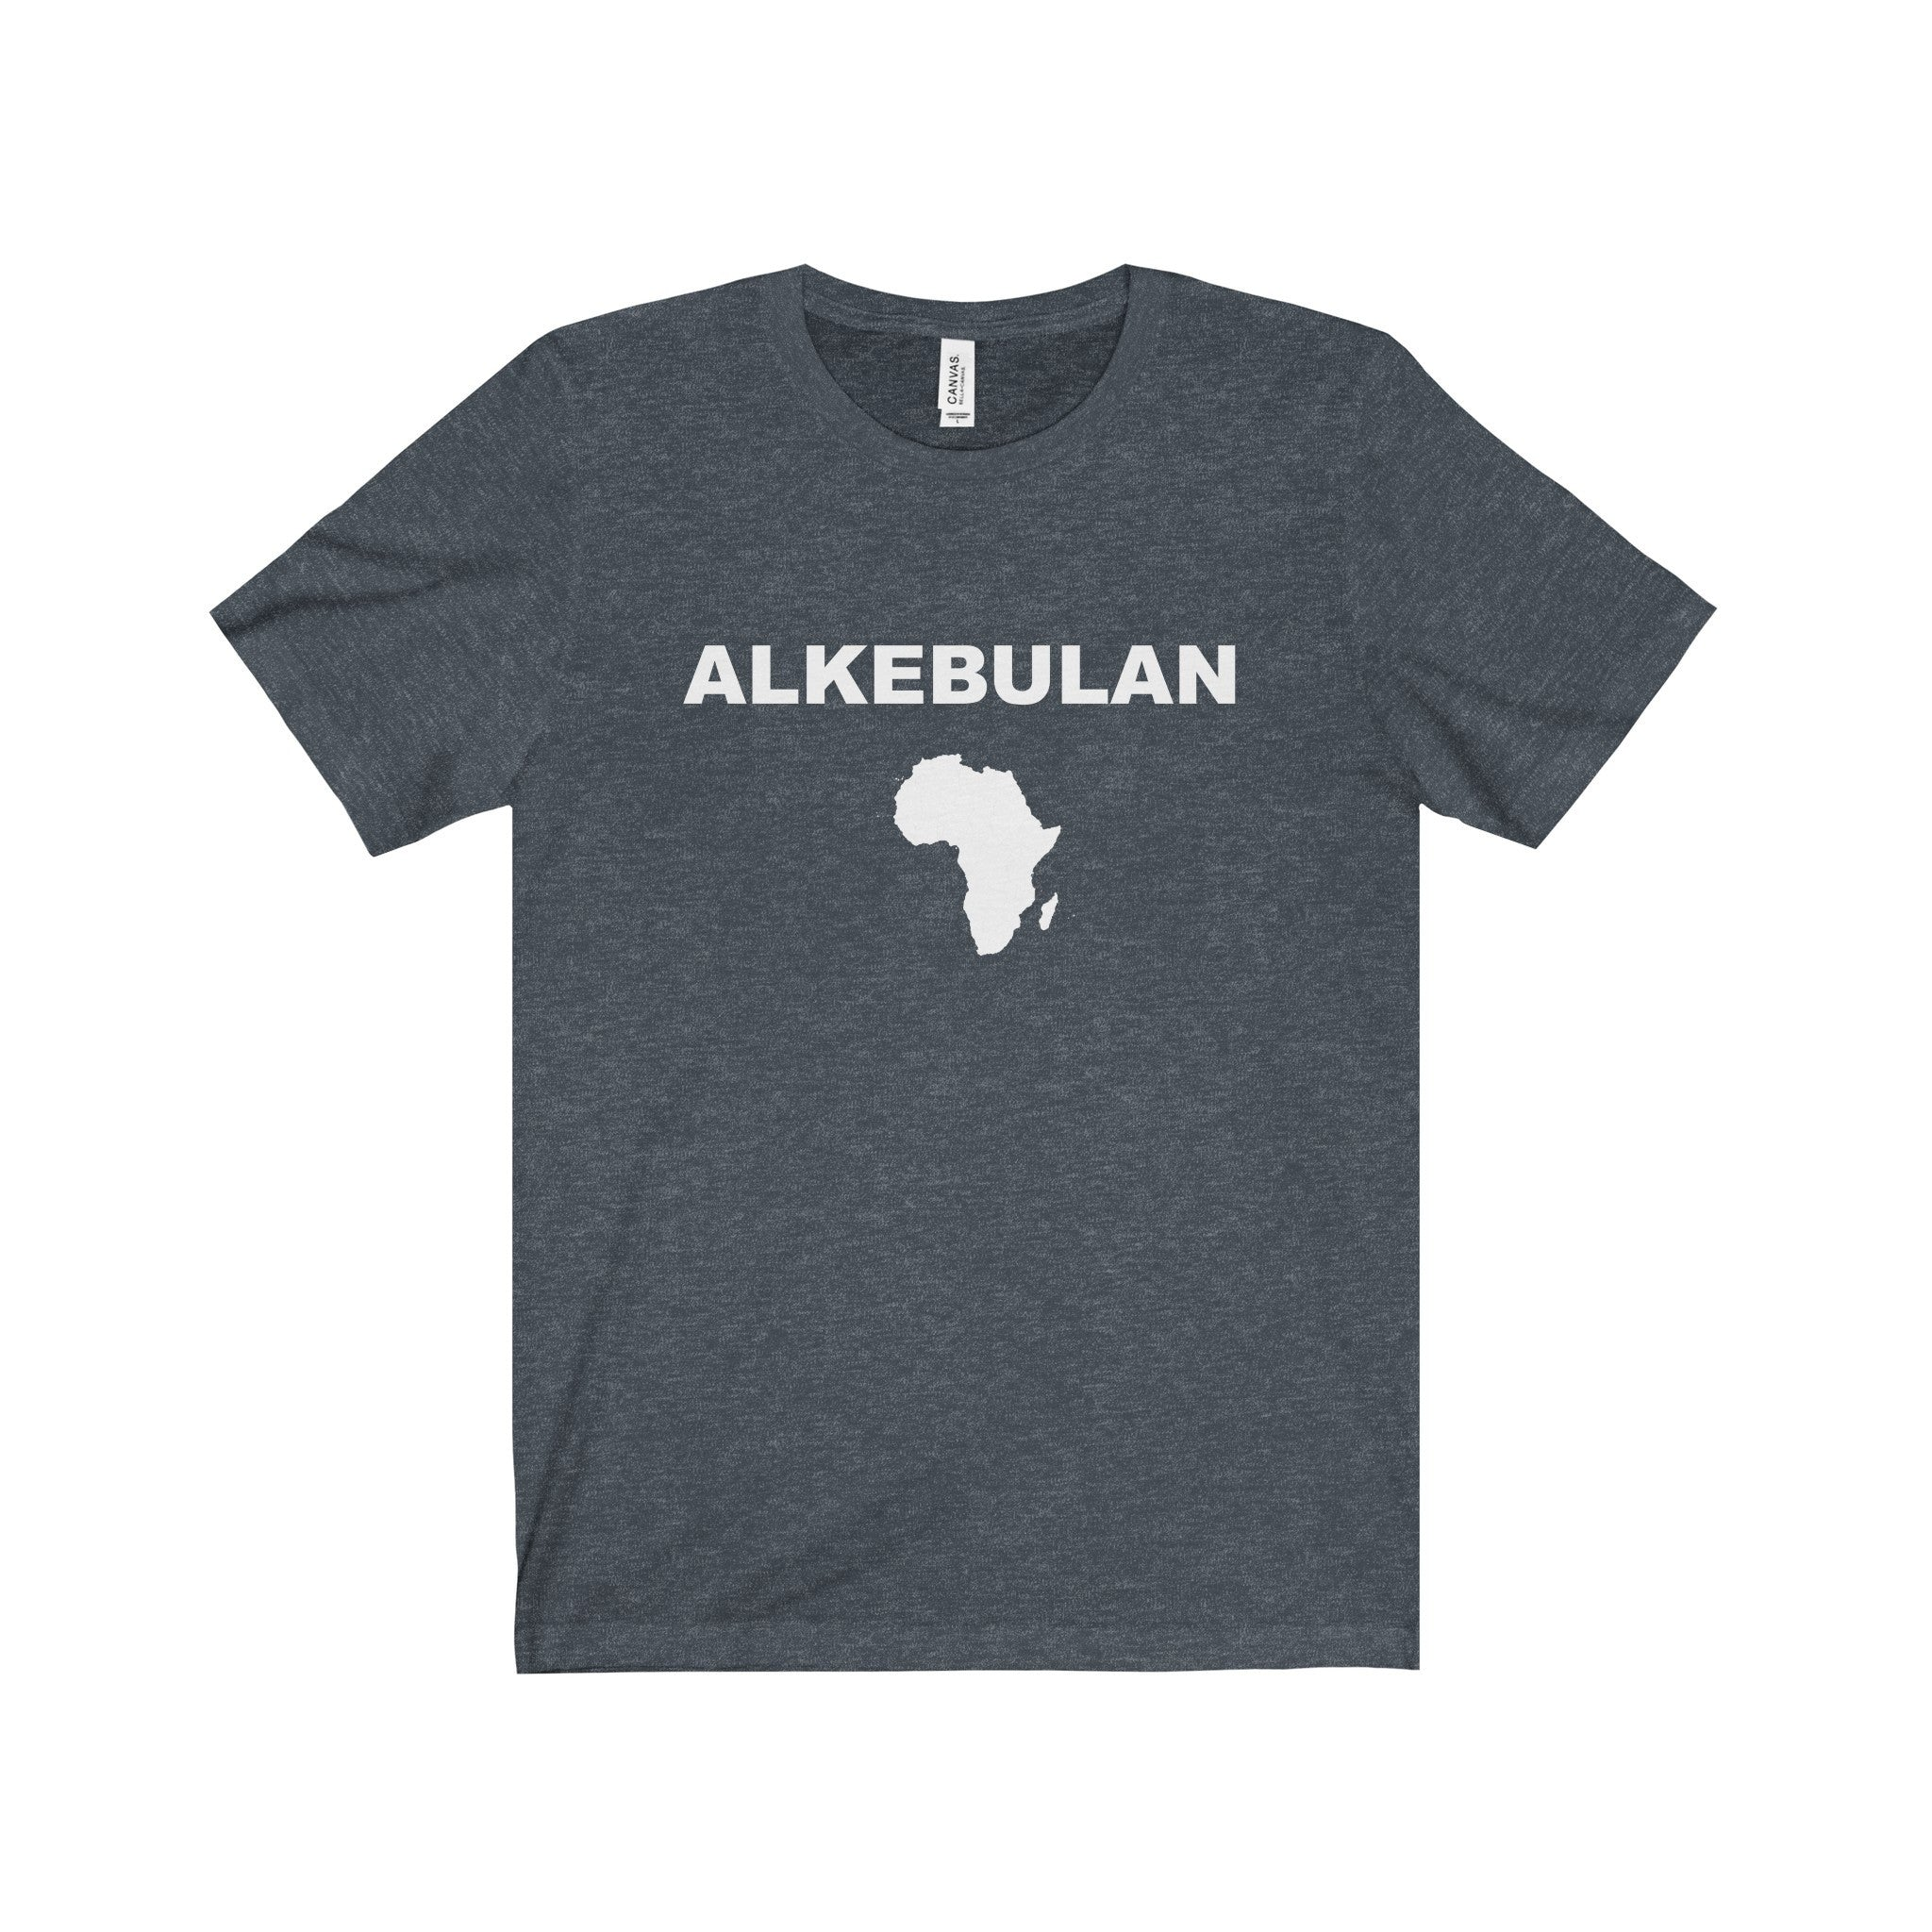 ALKEBULAN Black Letter Tee (4 colors available)